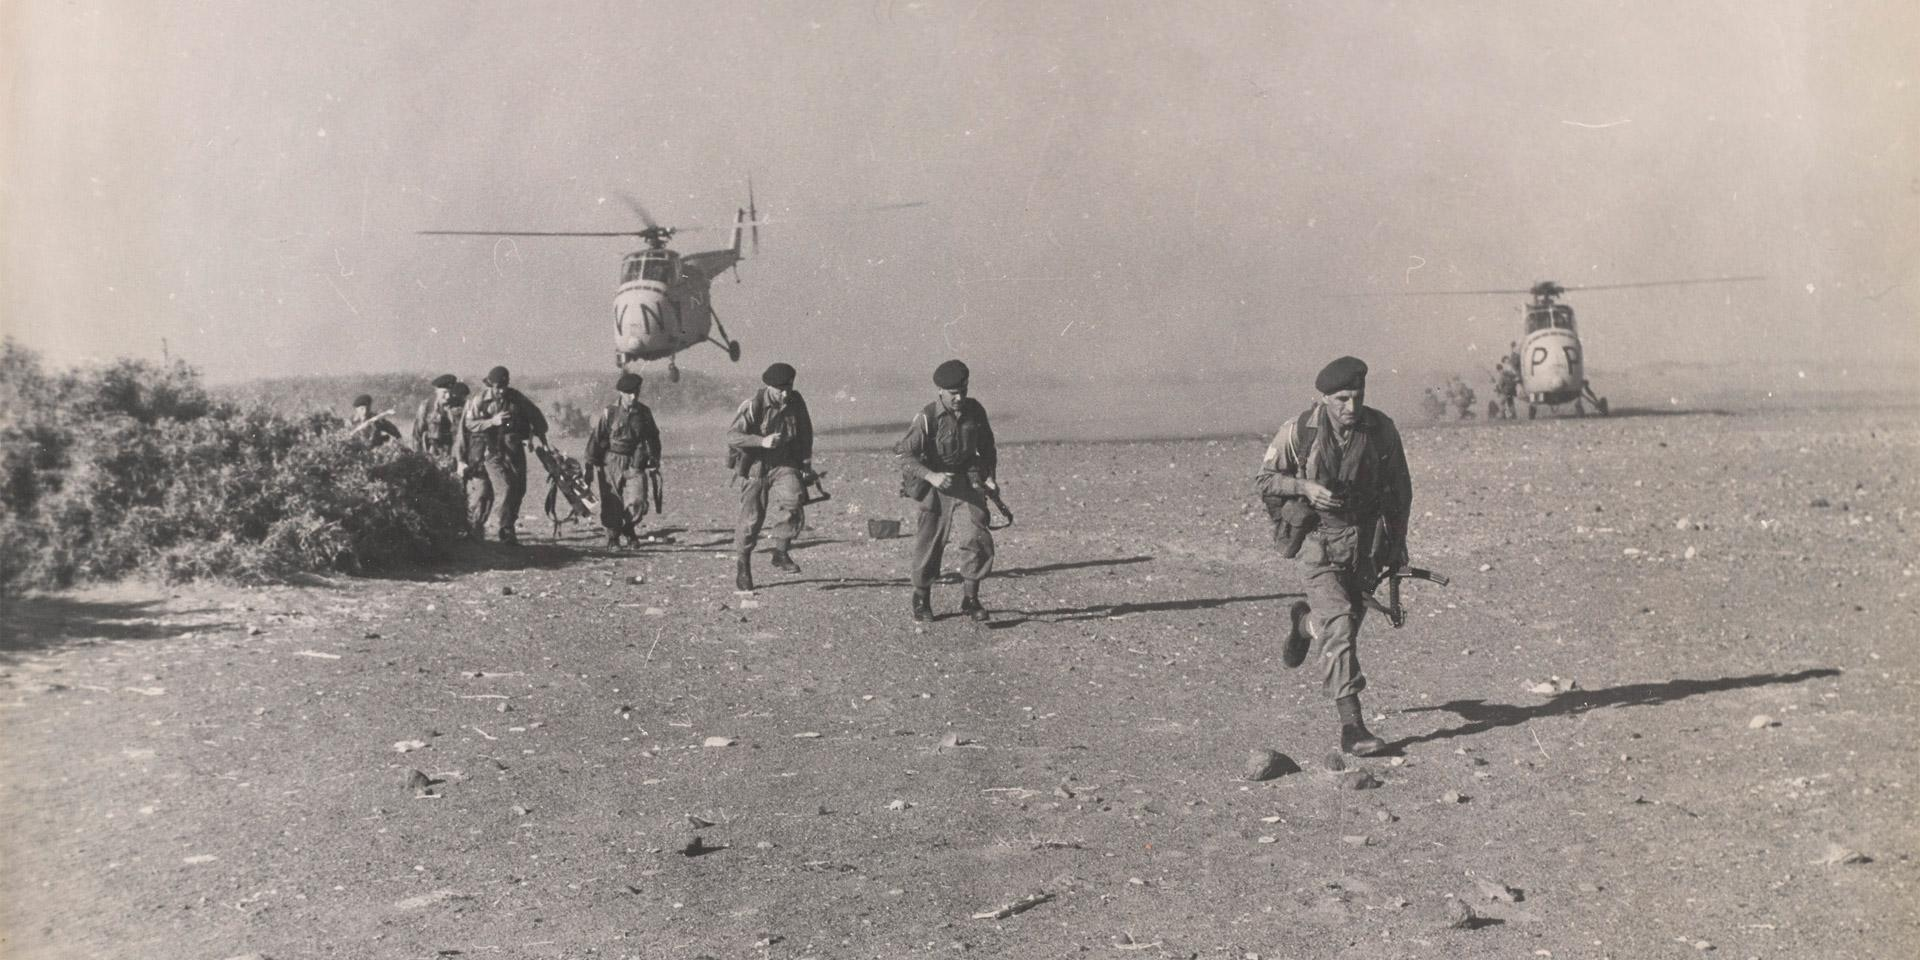 Troops disembark from helicopters, 1964